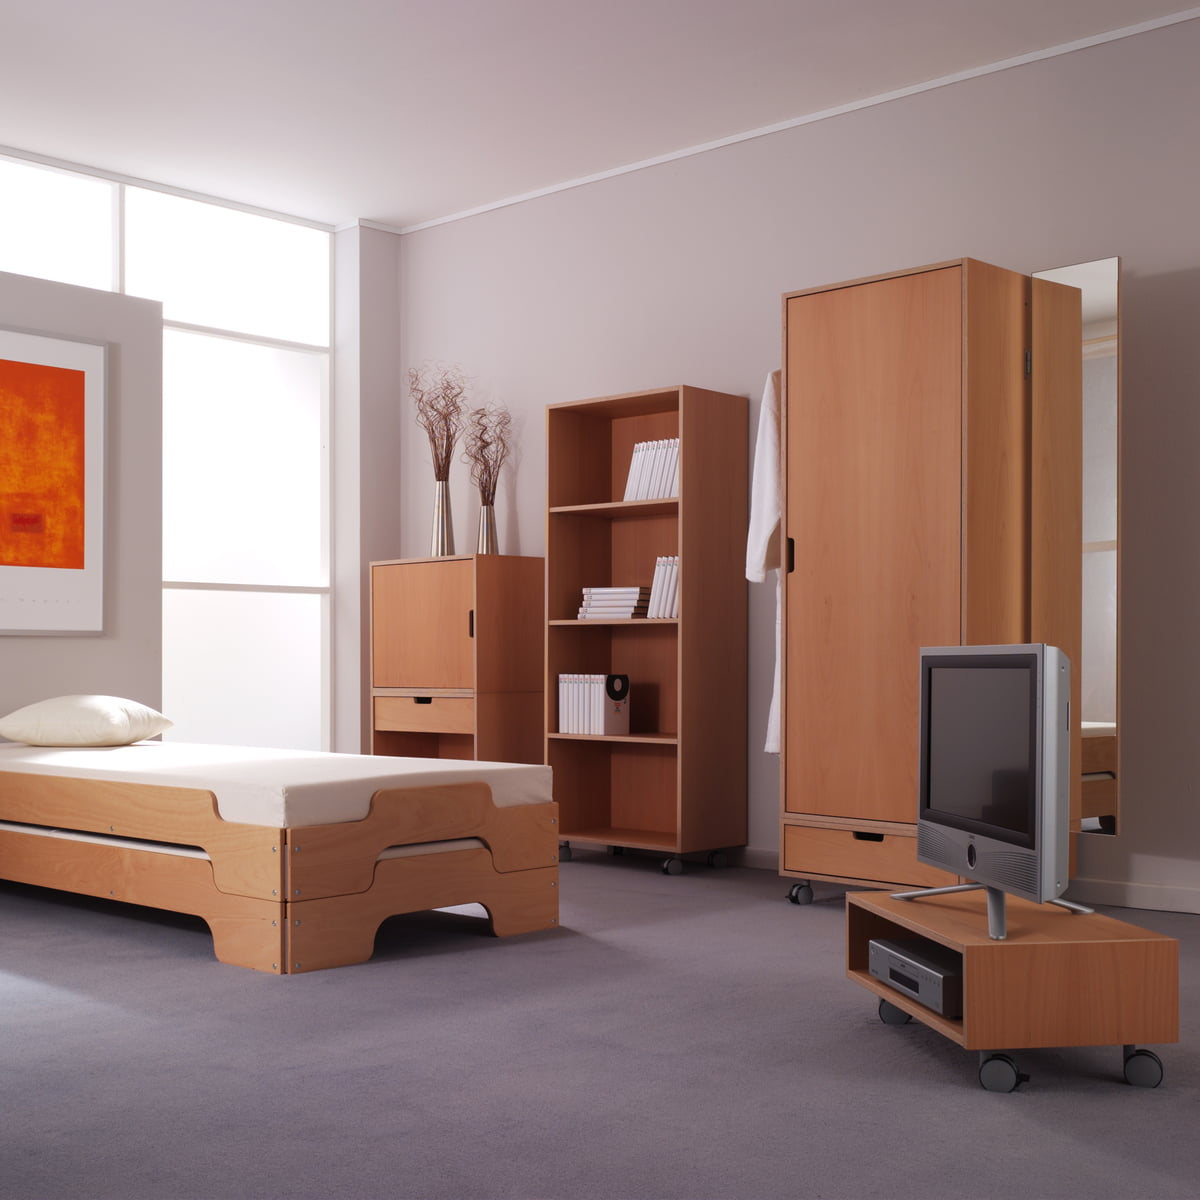 modular schrankelement von m ller m belwerkst tten connox. Black Bedroom Furniture Sets. Home Design Ideas